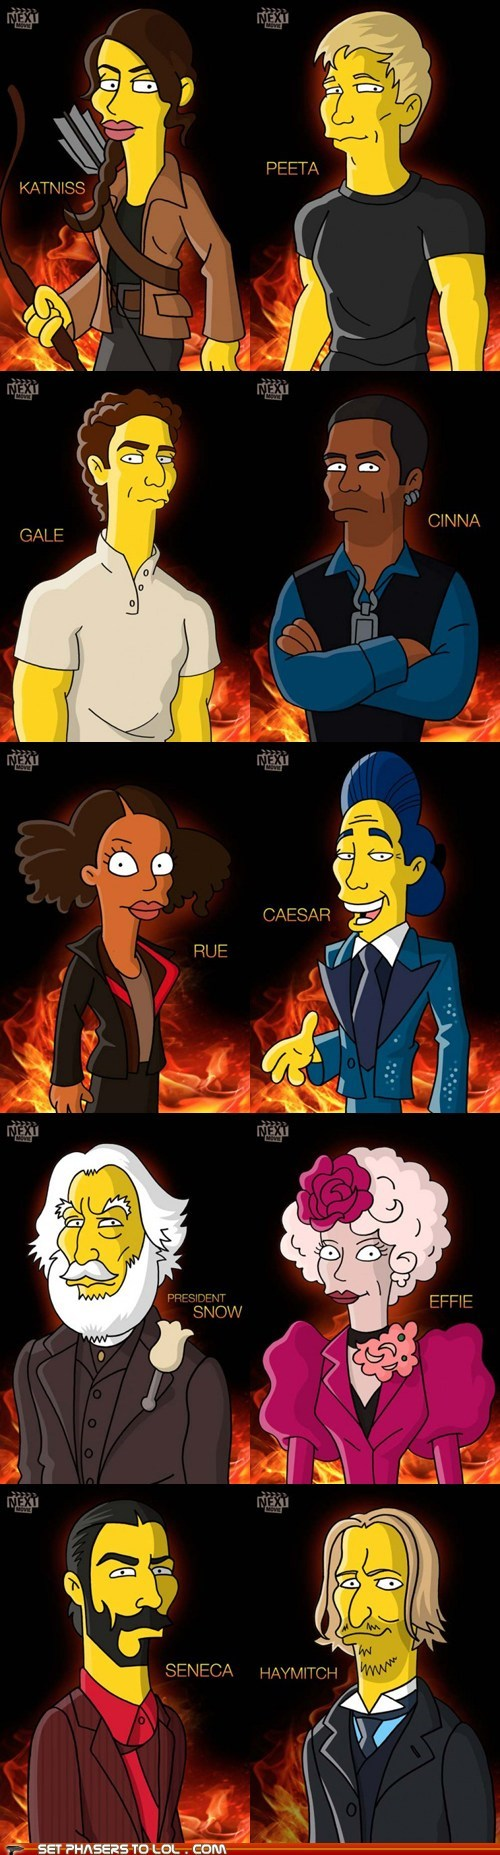 cartoons characters cinna effie trinket gale hunger games katniss Movie peeta president snow rue simpsons - 6004613376